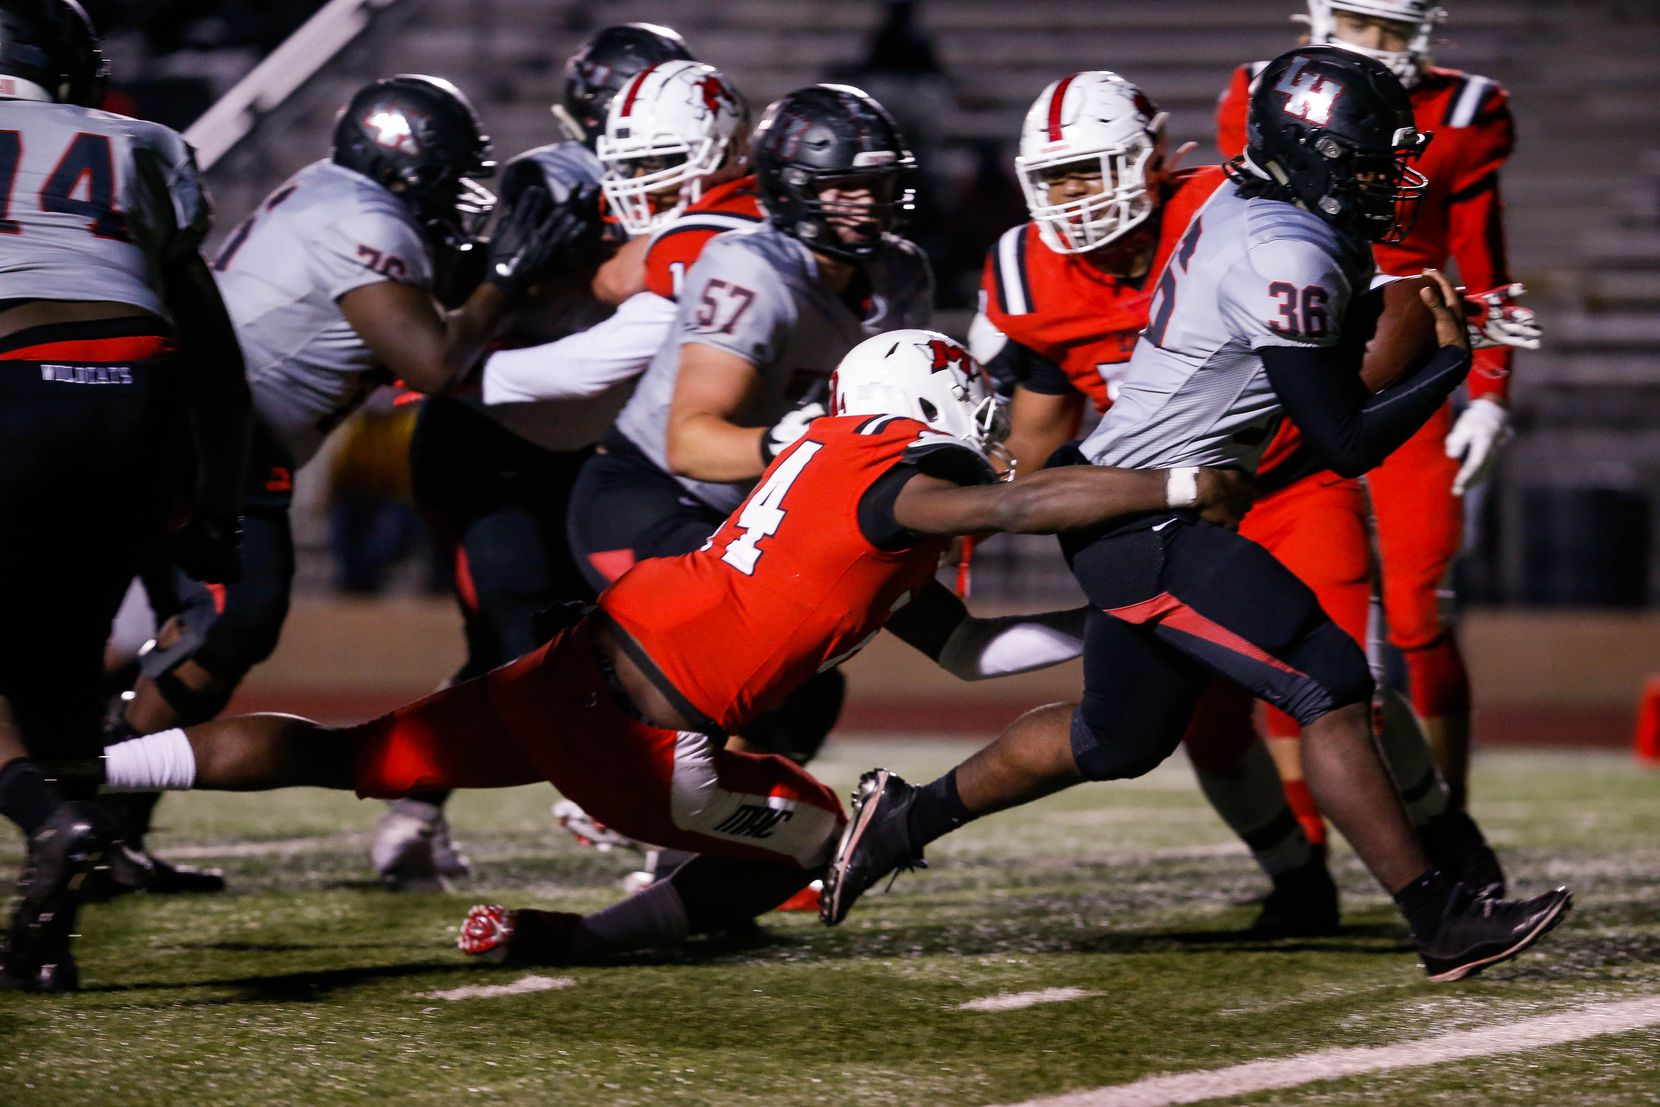 Lake Highlands quarterback Zhmari Edwards (36)evades the Irving MacArthur defense for a touchdown during the fourth quarter of a high school football game at Joy & Ralph Ellis Stadium in Irving on Friday, Oct. 23, 2020. (Juan Figueroa/ The Dallas Morning News)